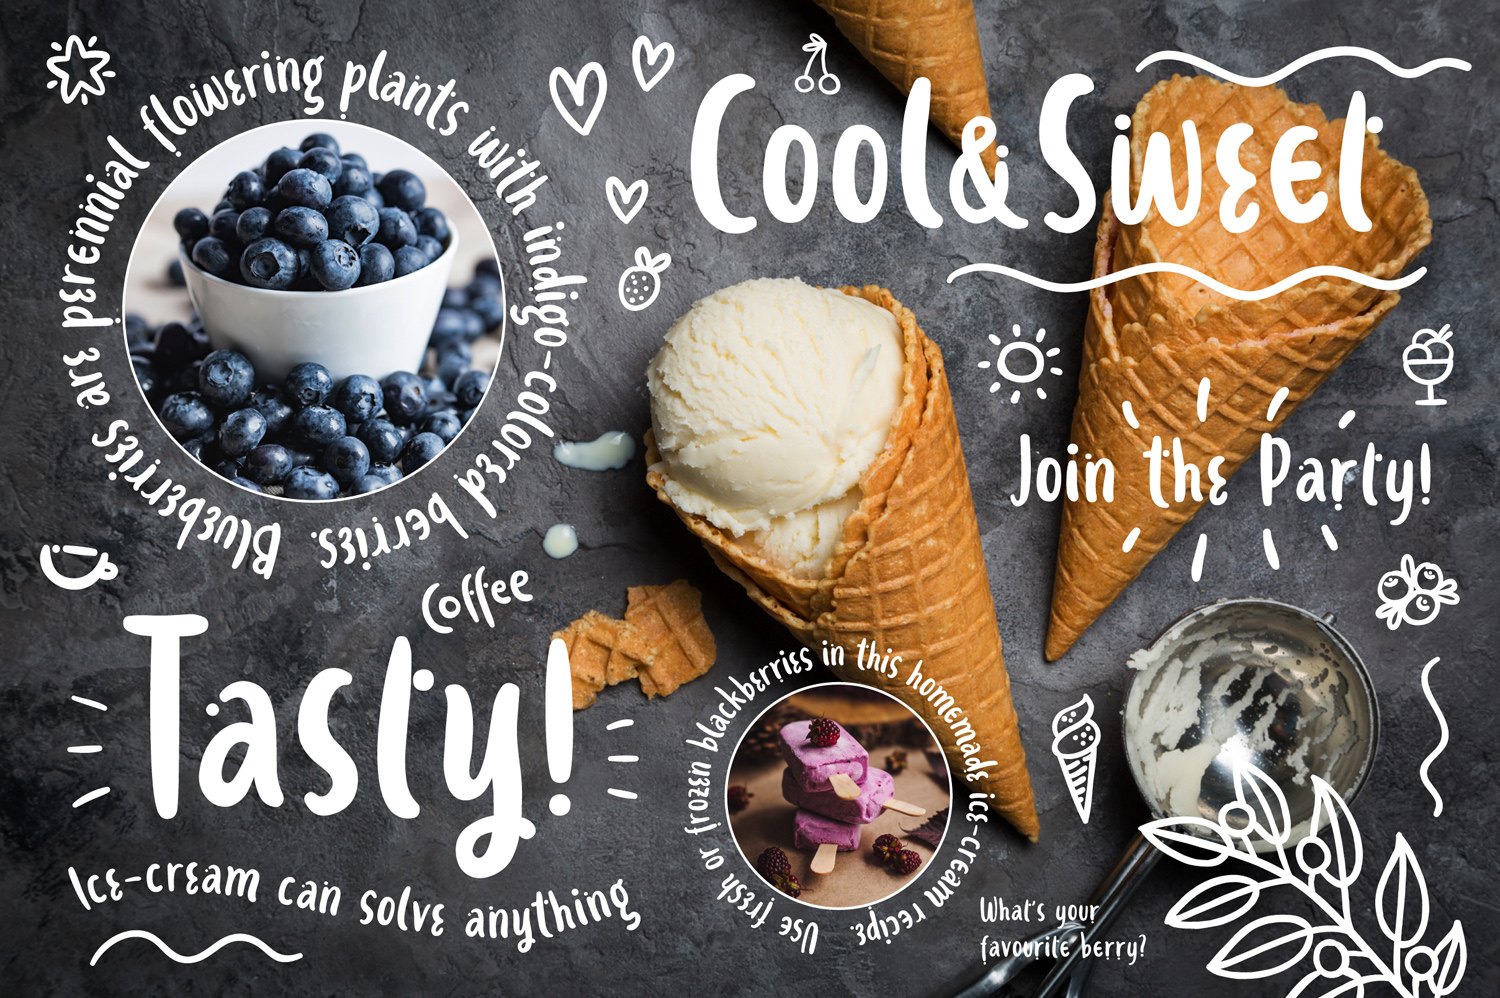 Ice-cream and Berries Font